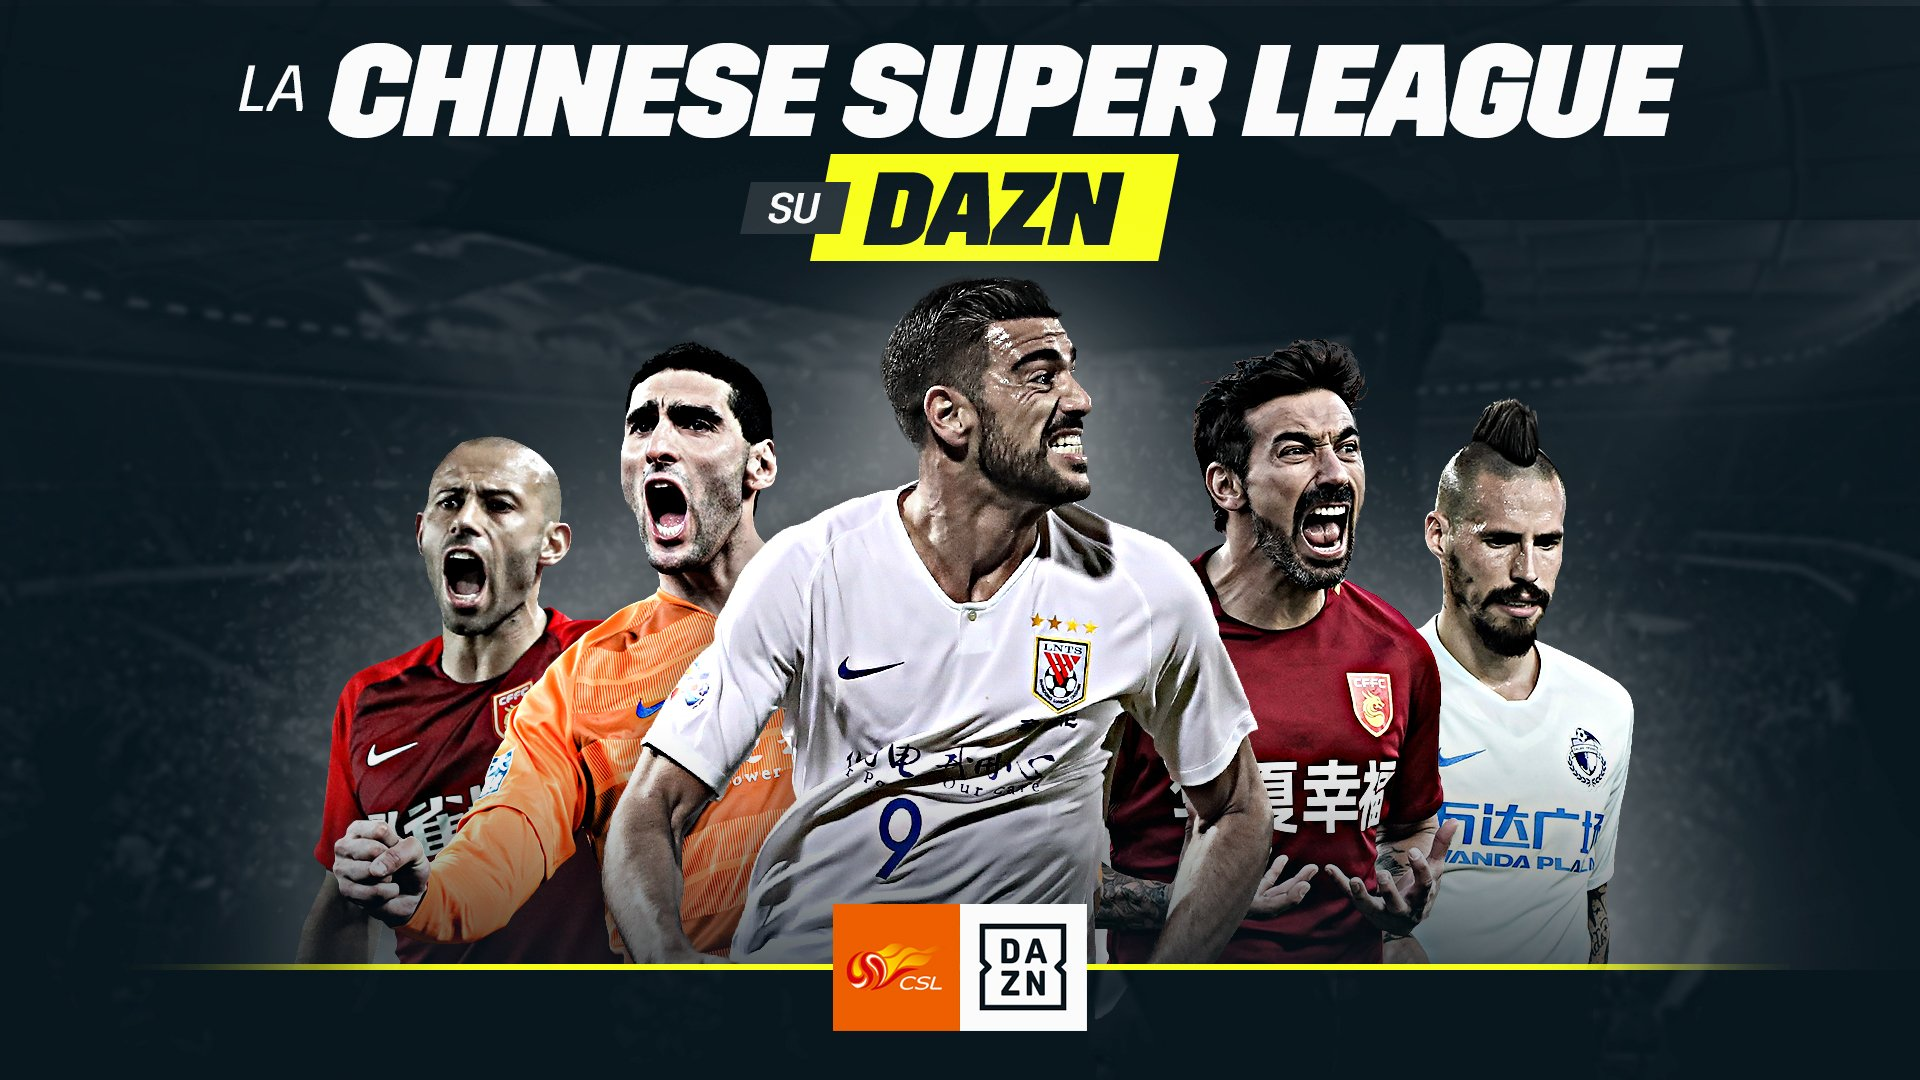 DAZN amplia offerta calcio internazionale con la Chinese Super League